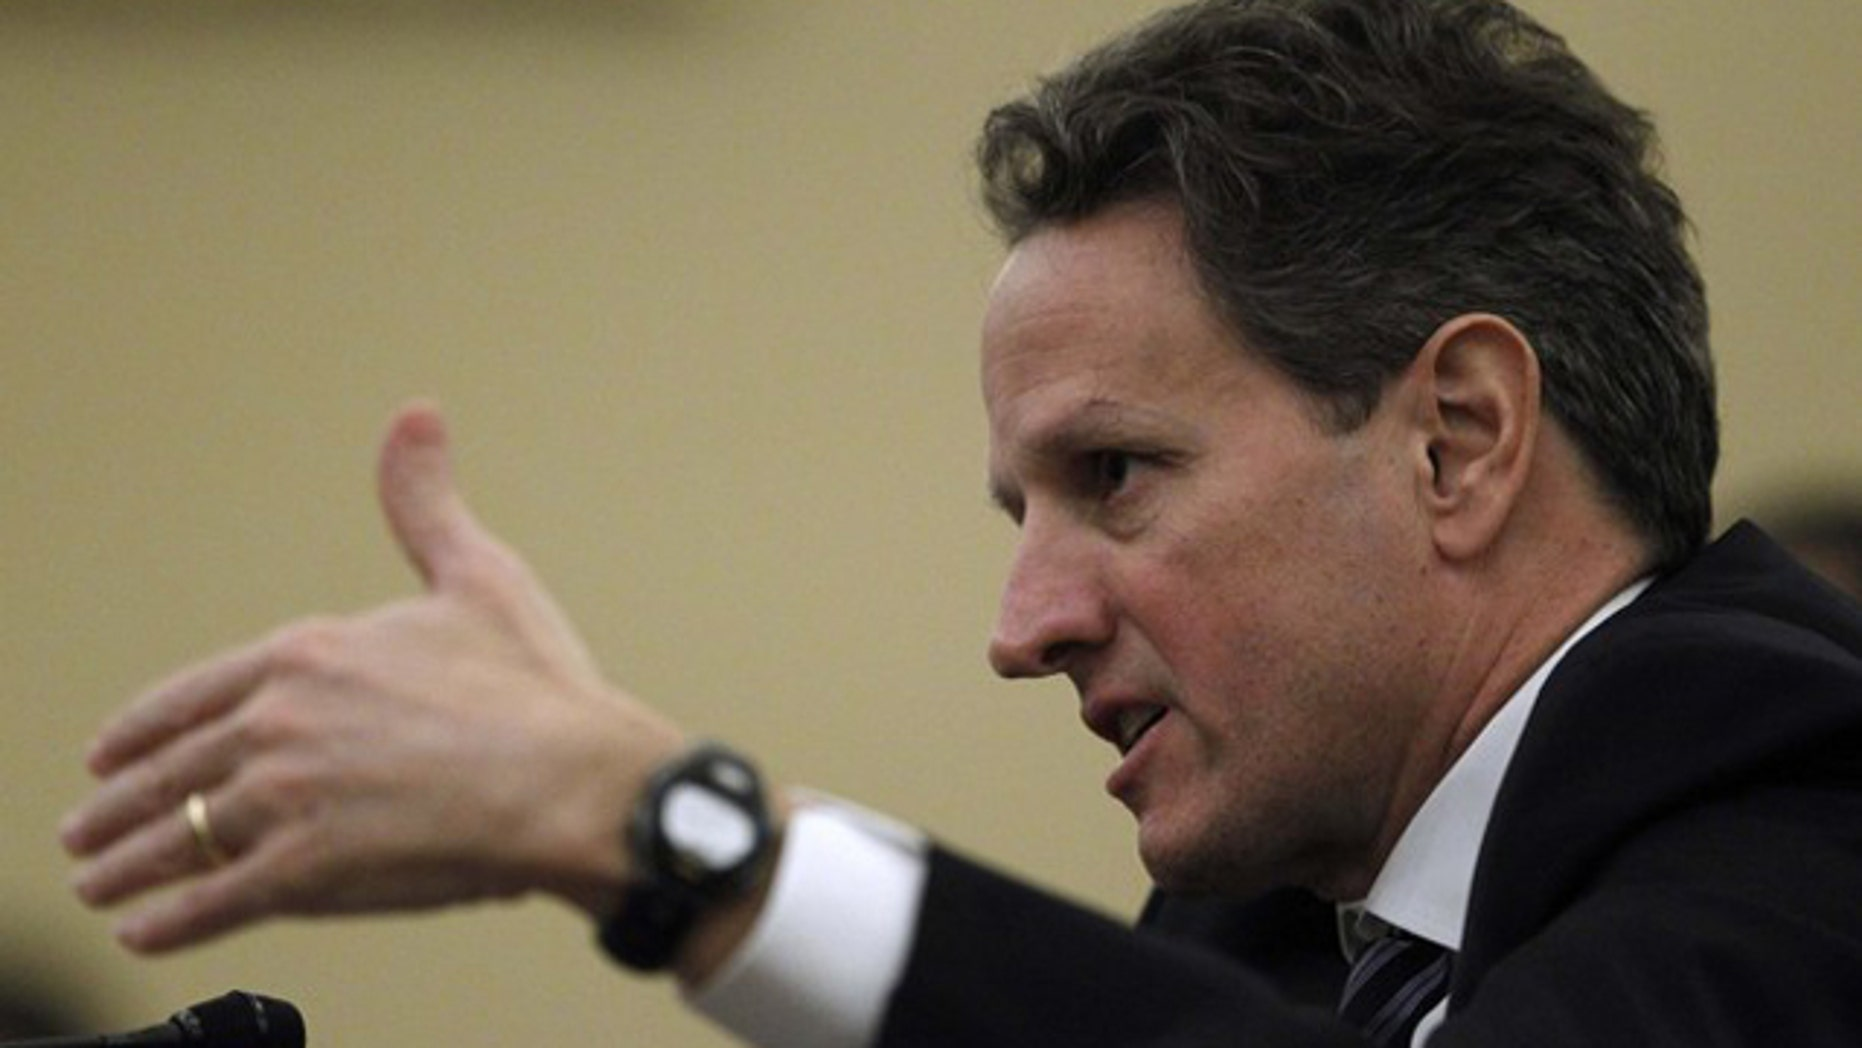 Treasury Secretary Tim Geithner testifies at a House Ways and Means Committee hearing on Capitol Hill Feb. 15.